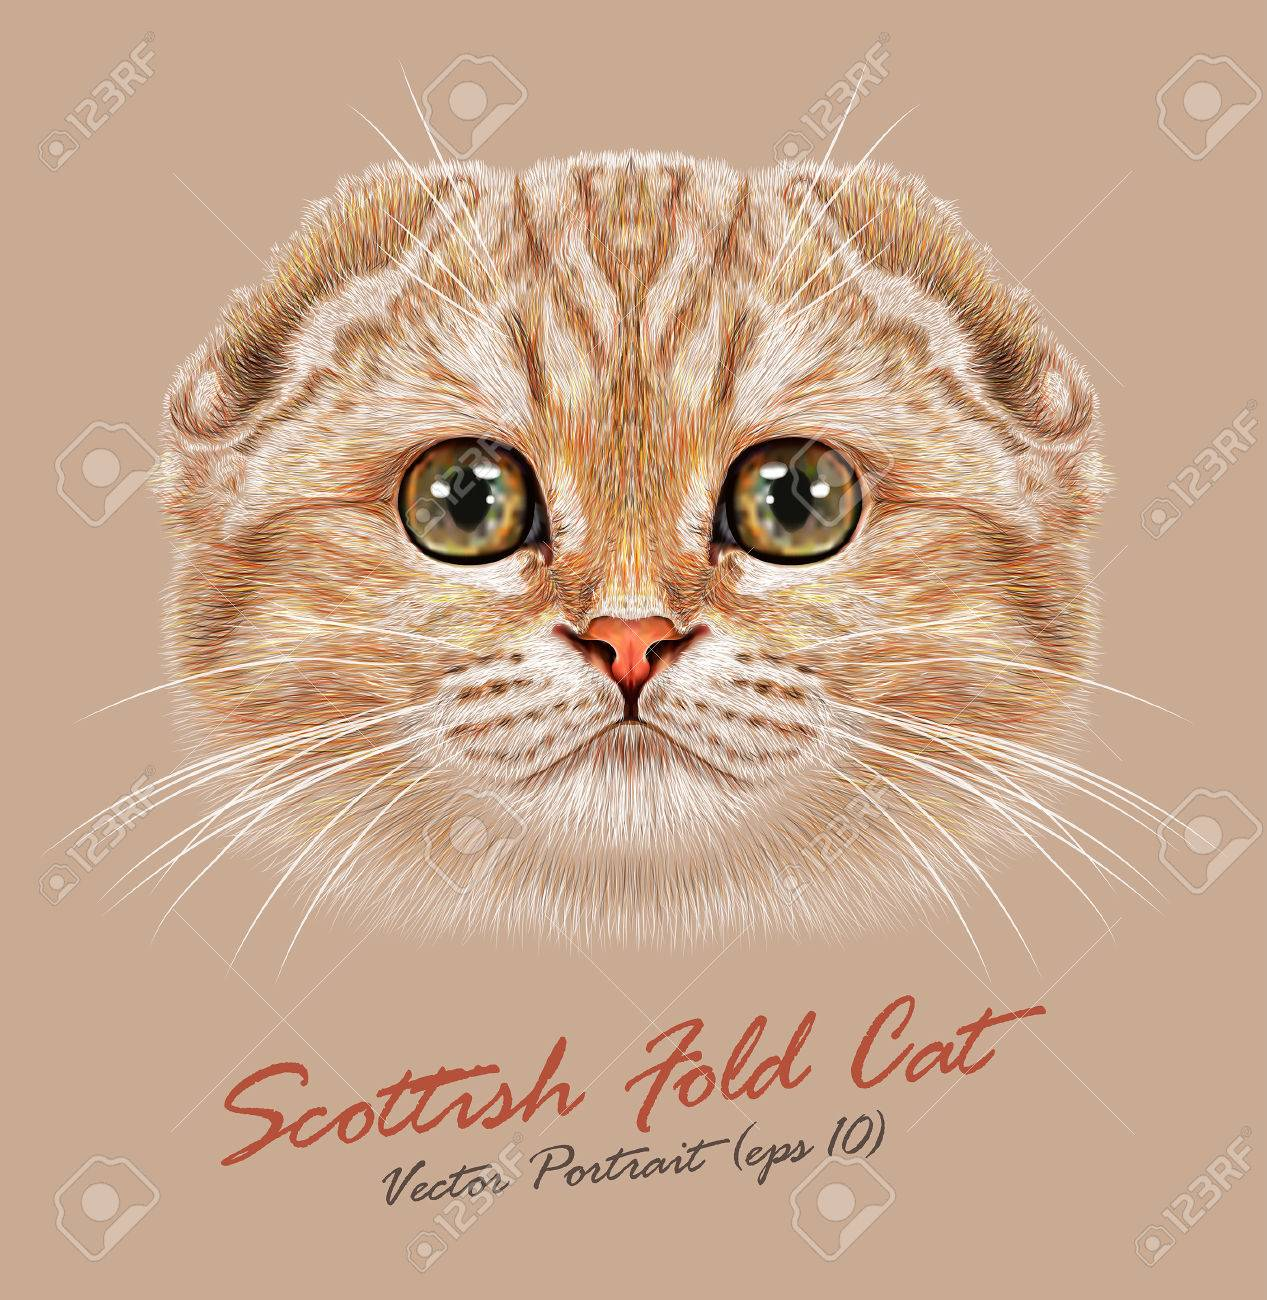 vector portrait of scottish fold cat young cute cat peach colored